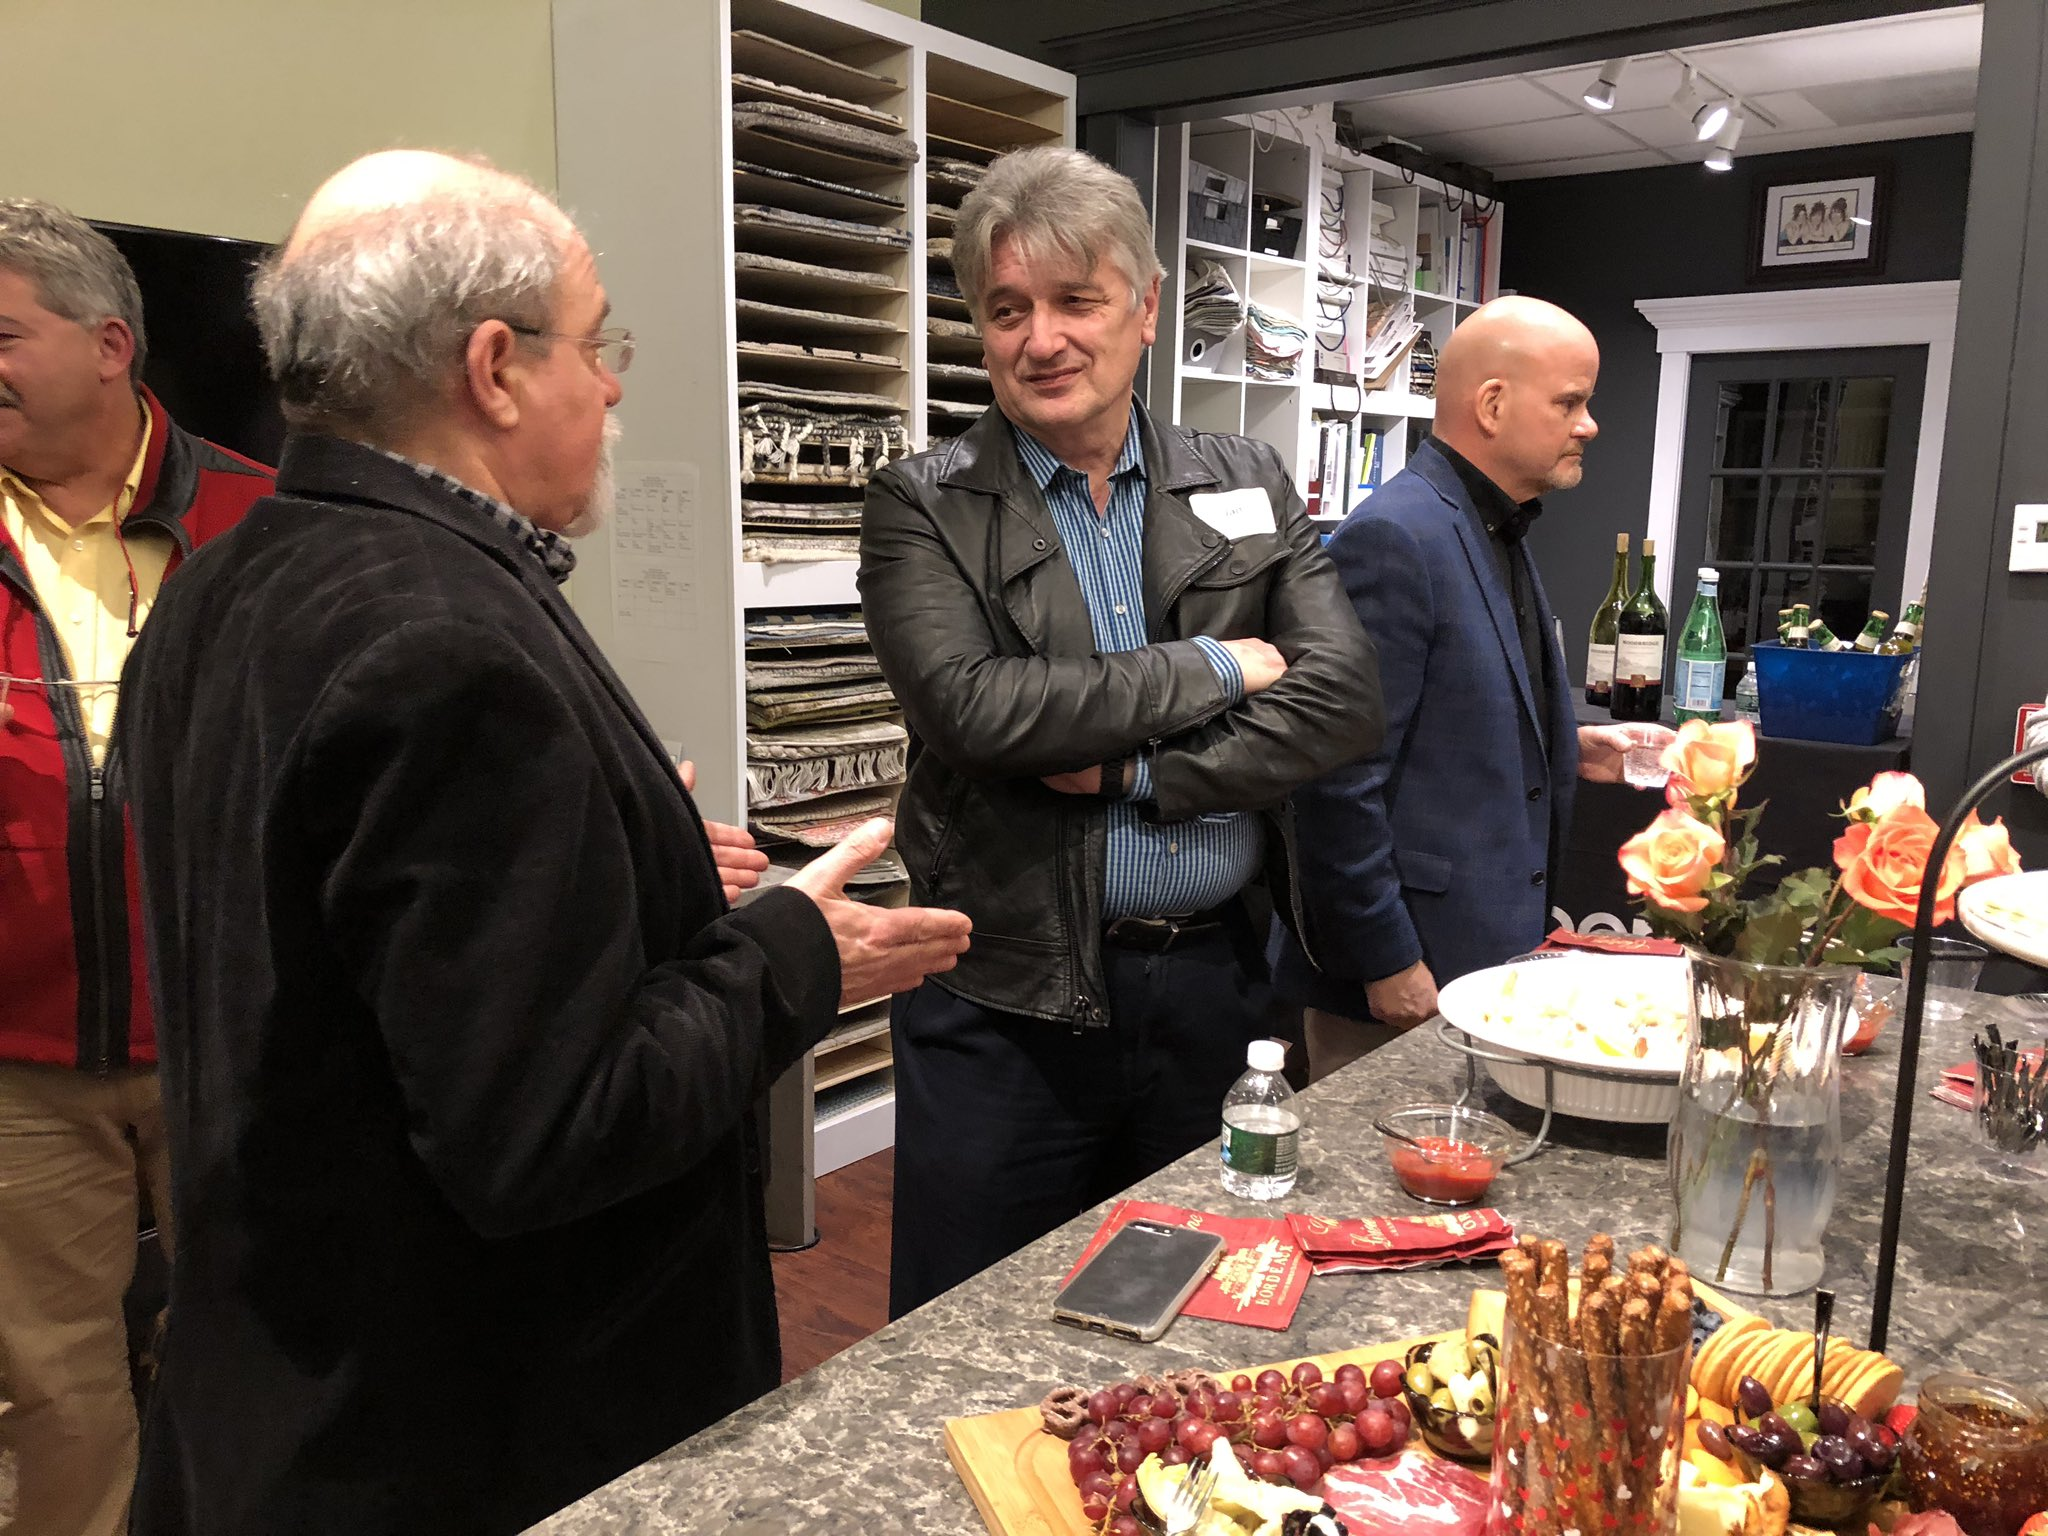 Aia Connecticut On Twitter Smarthome Held The First Allied Adventure On Thursday At Design House Interiors In Wallingford Attendees Were Able To Network And See The Home And Commercial Technology That Smarthome